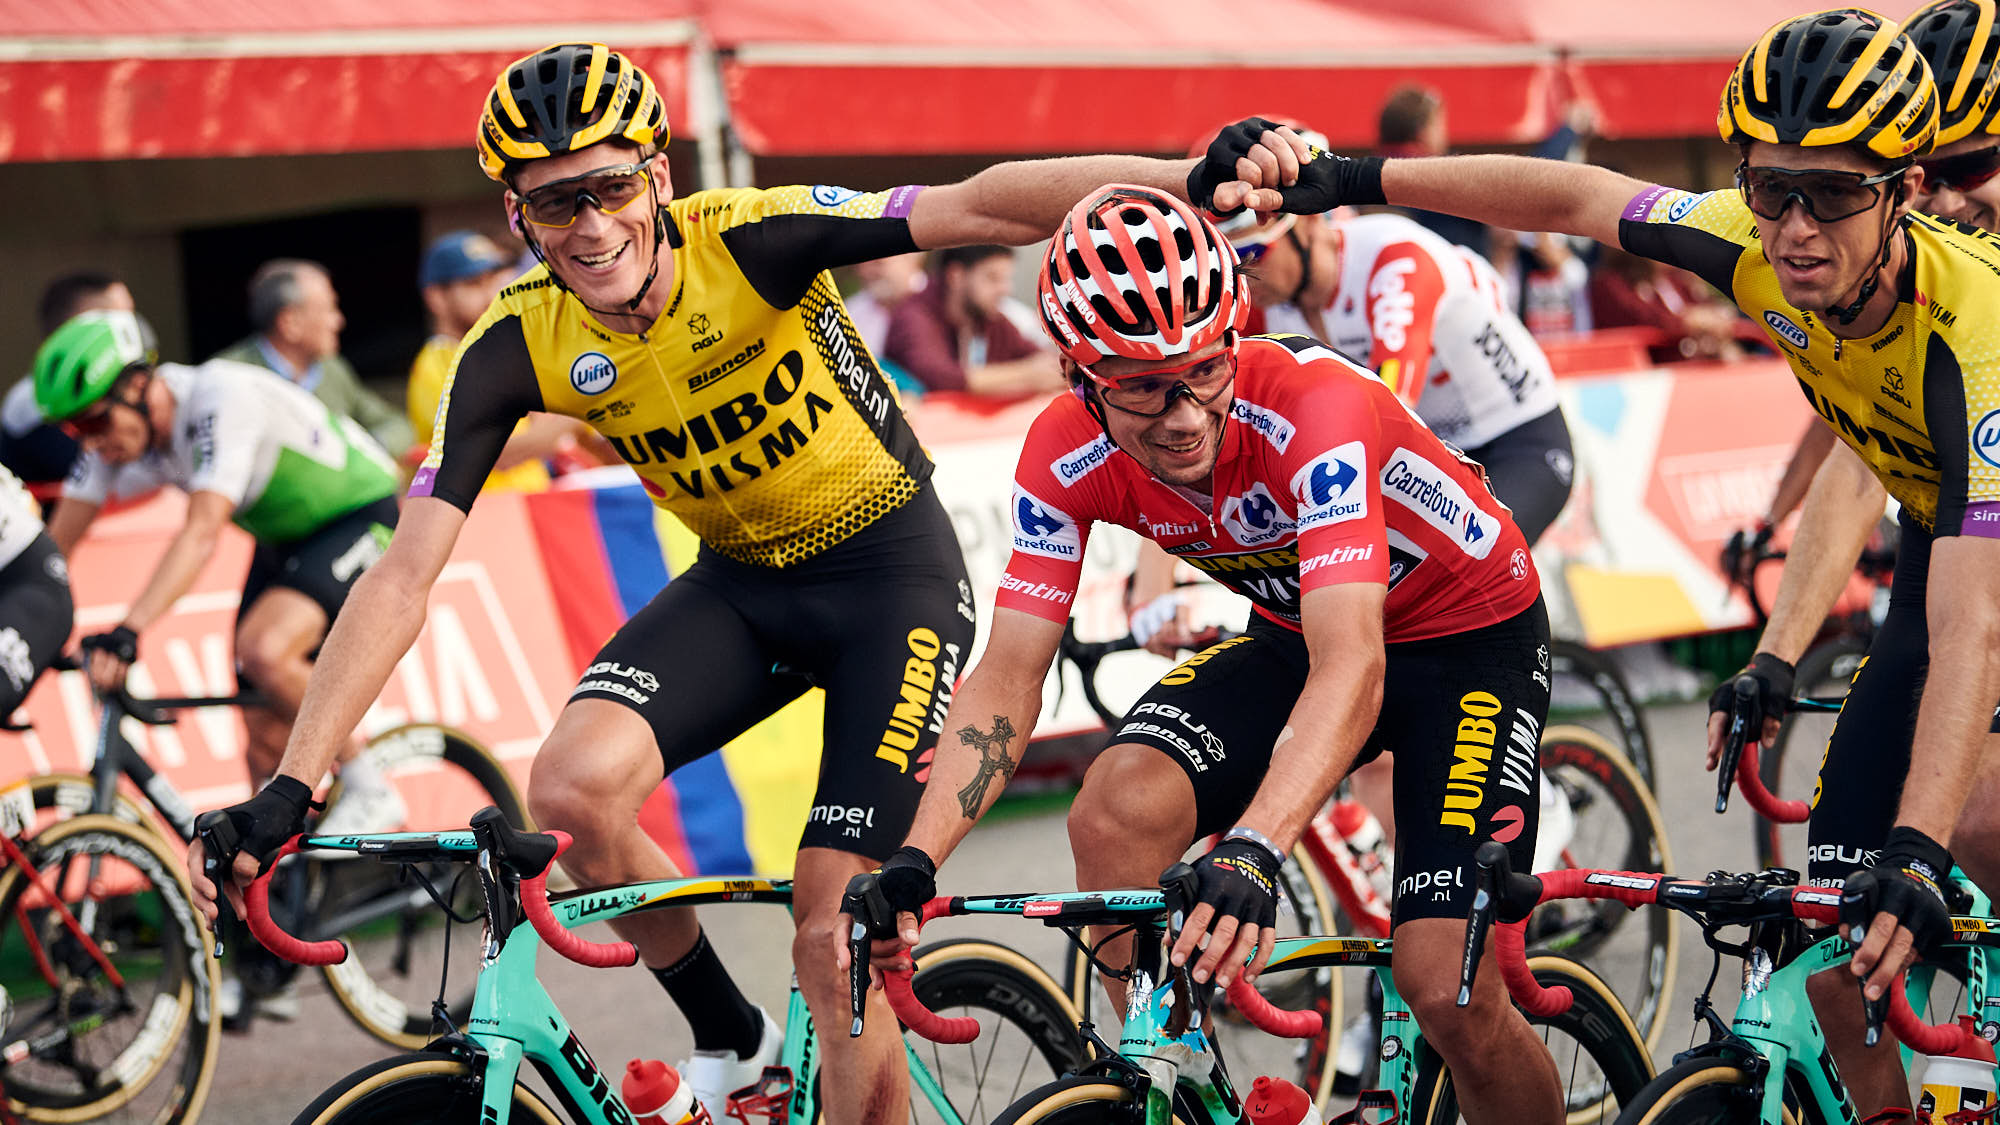 Team Jumbo-Visma cyclist celebrate while crossing the line in Madrid during La Vuelta